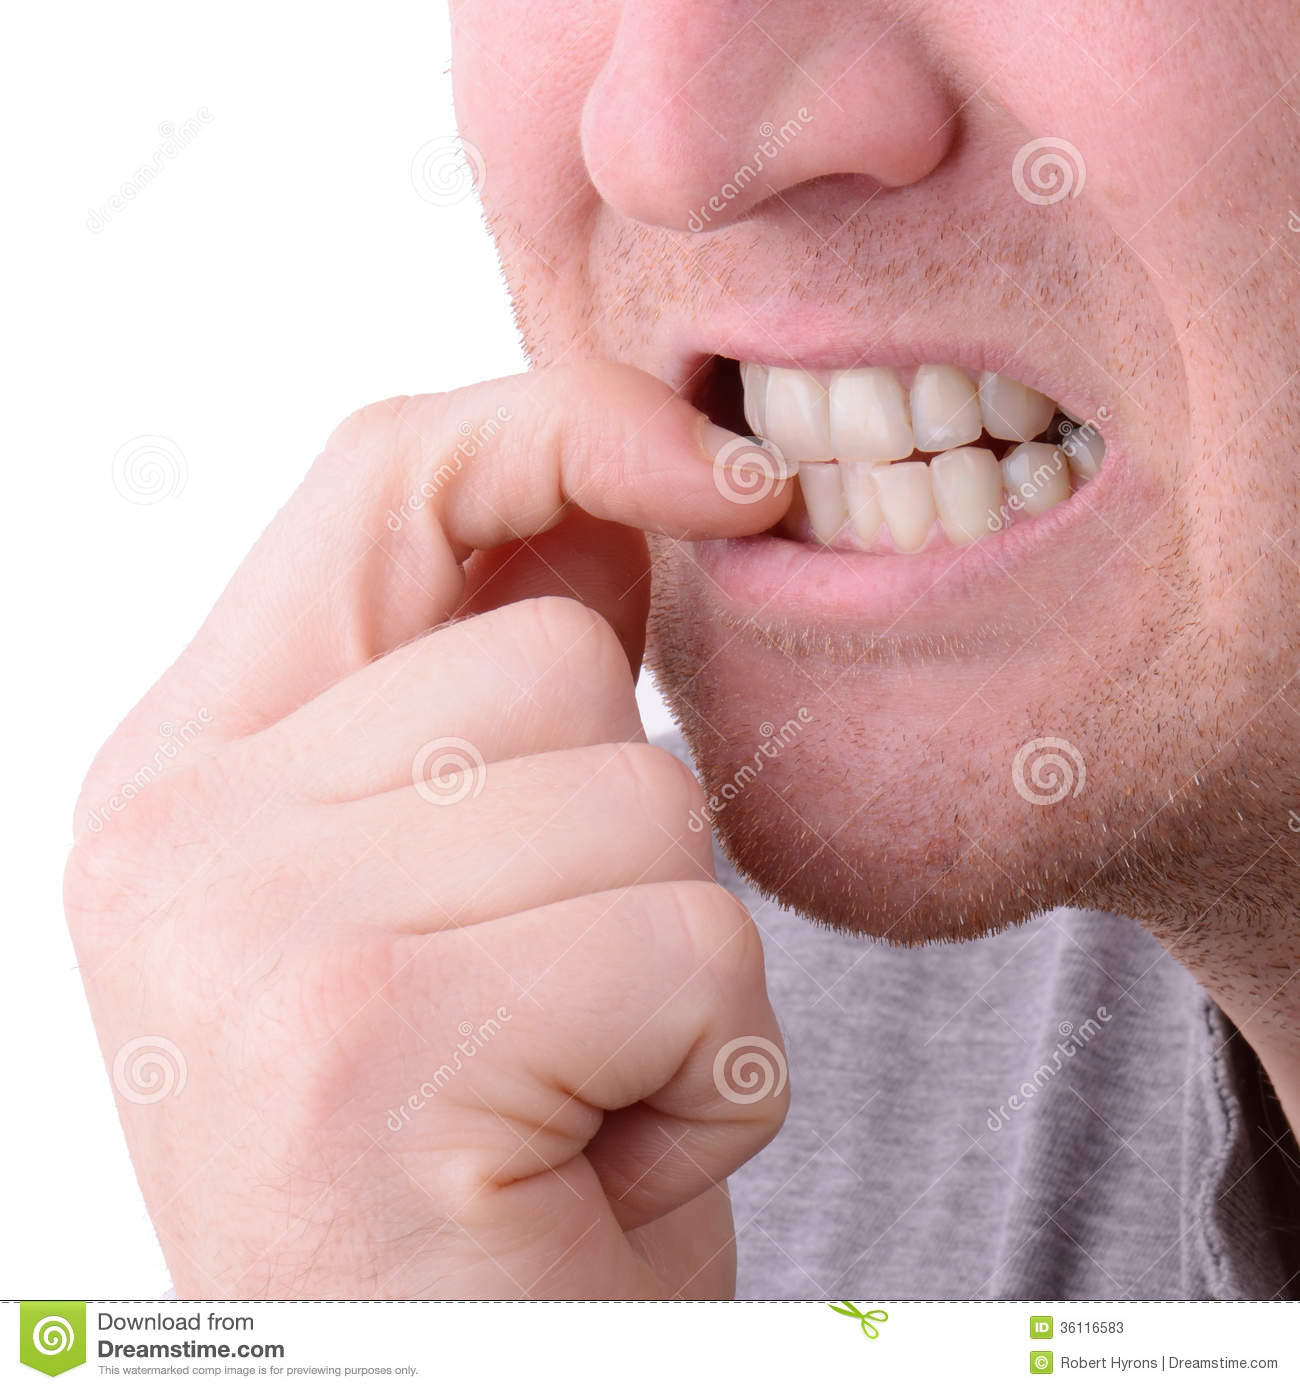 Nail biting stock image. Image of finger, person, stomach ...